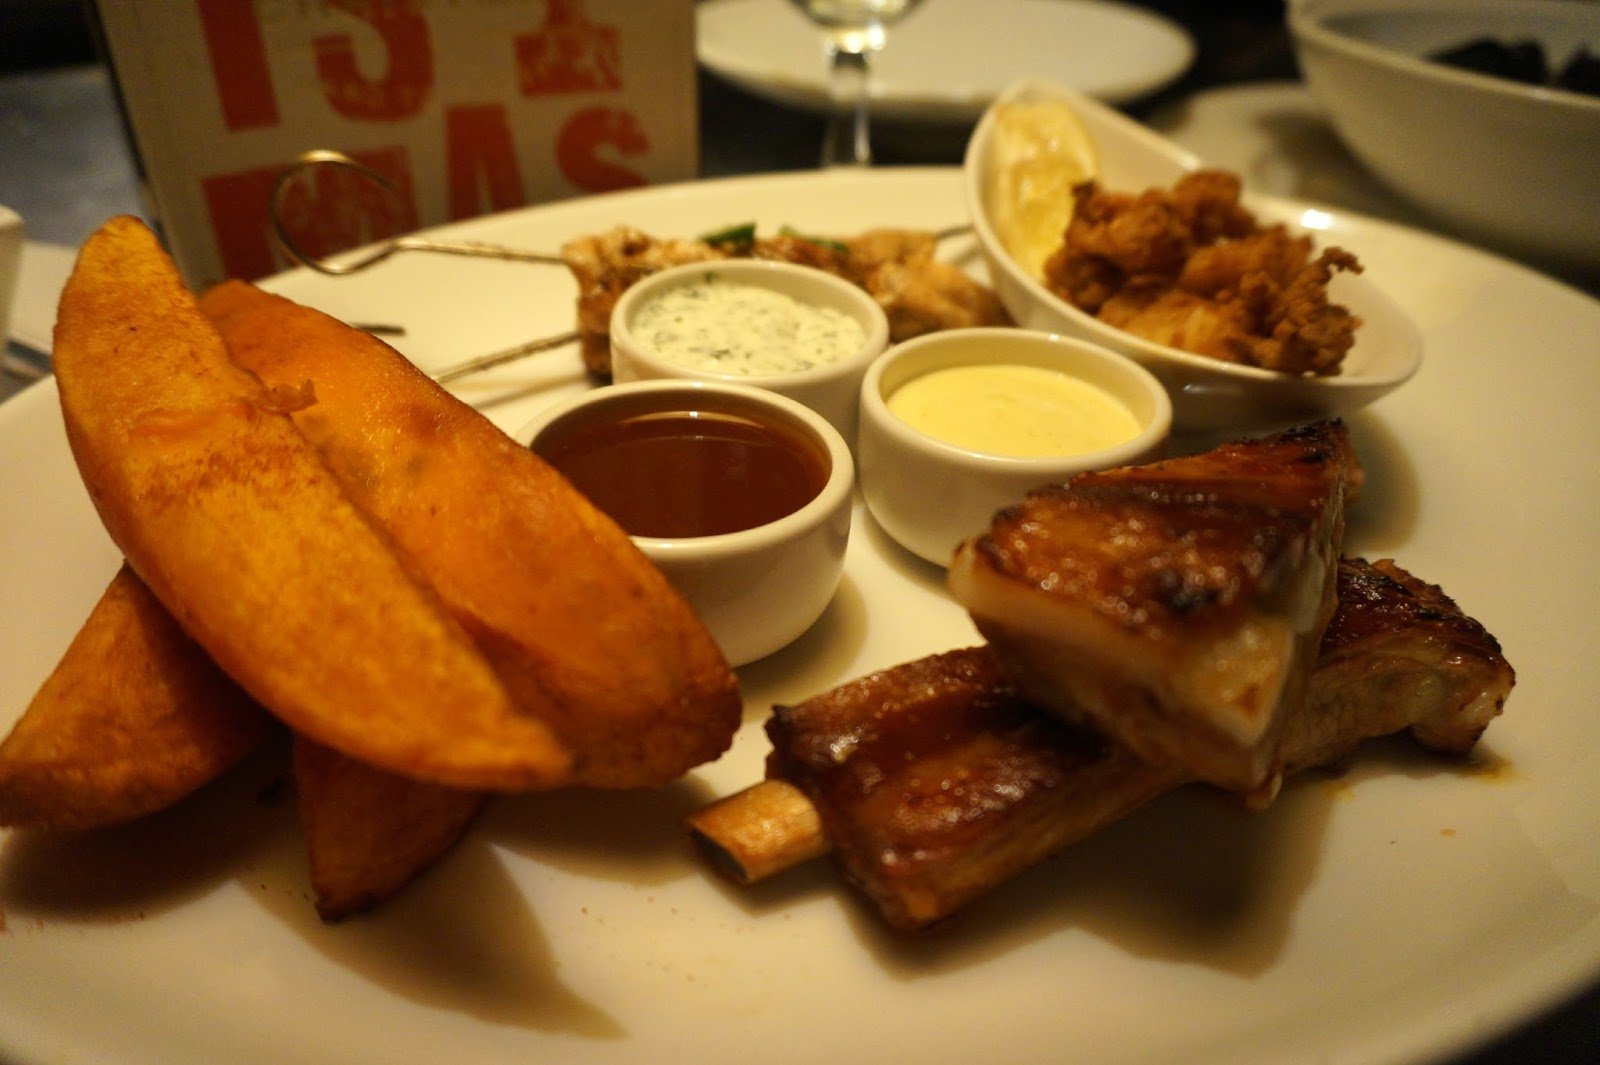 Honey glazed chicken skewers, salt and pepper calamari, BBQ ribs and baked sweet potato wedges.